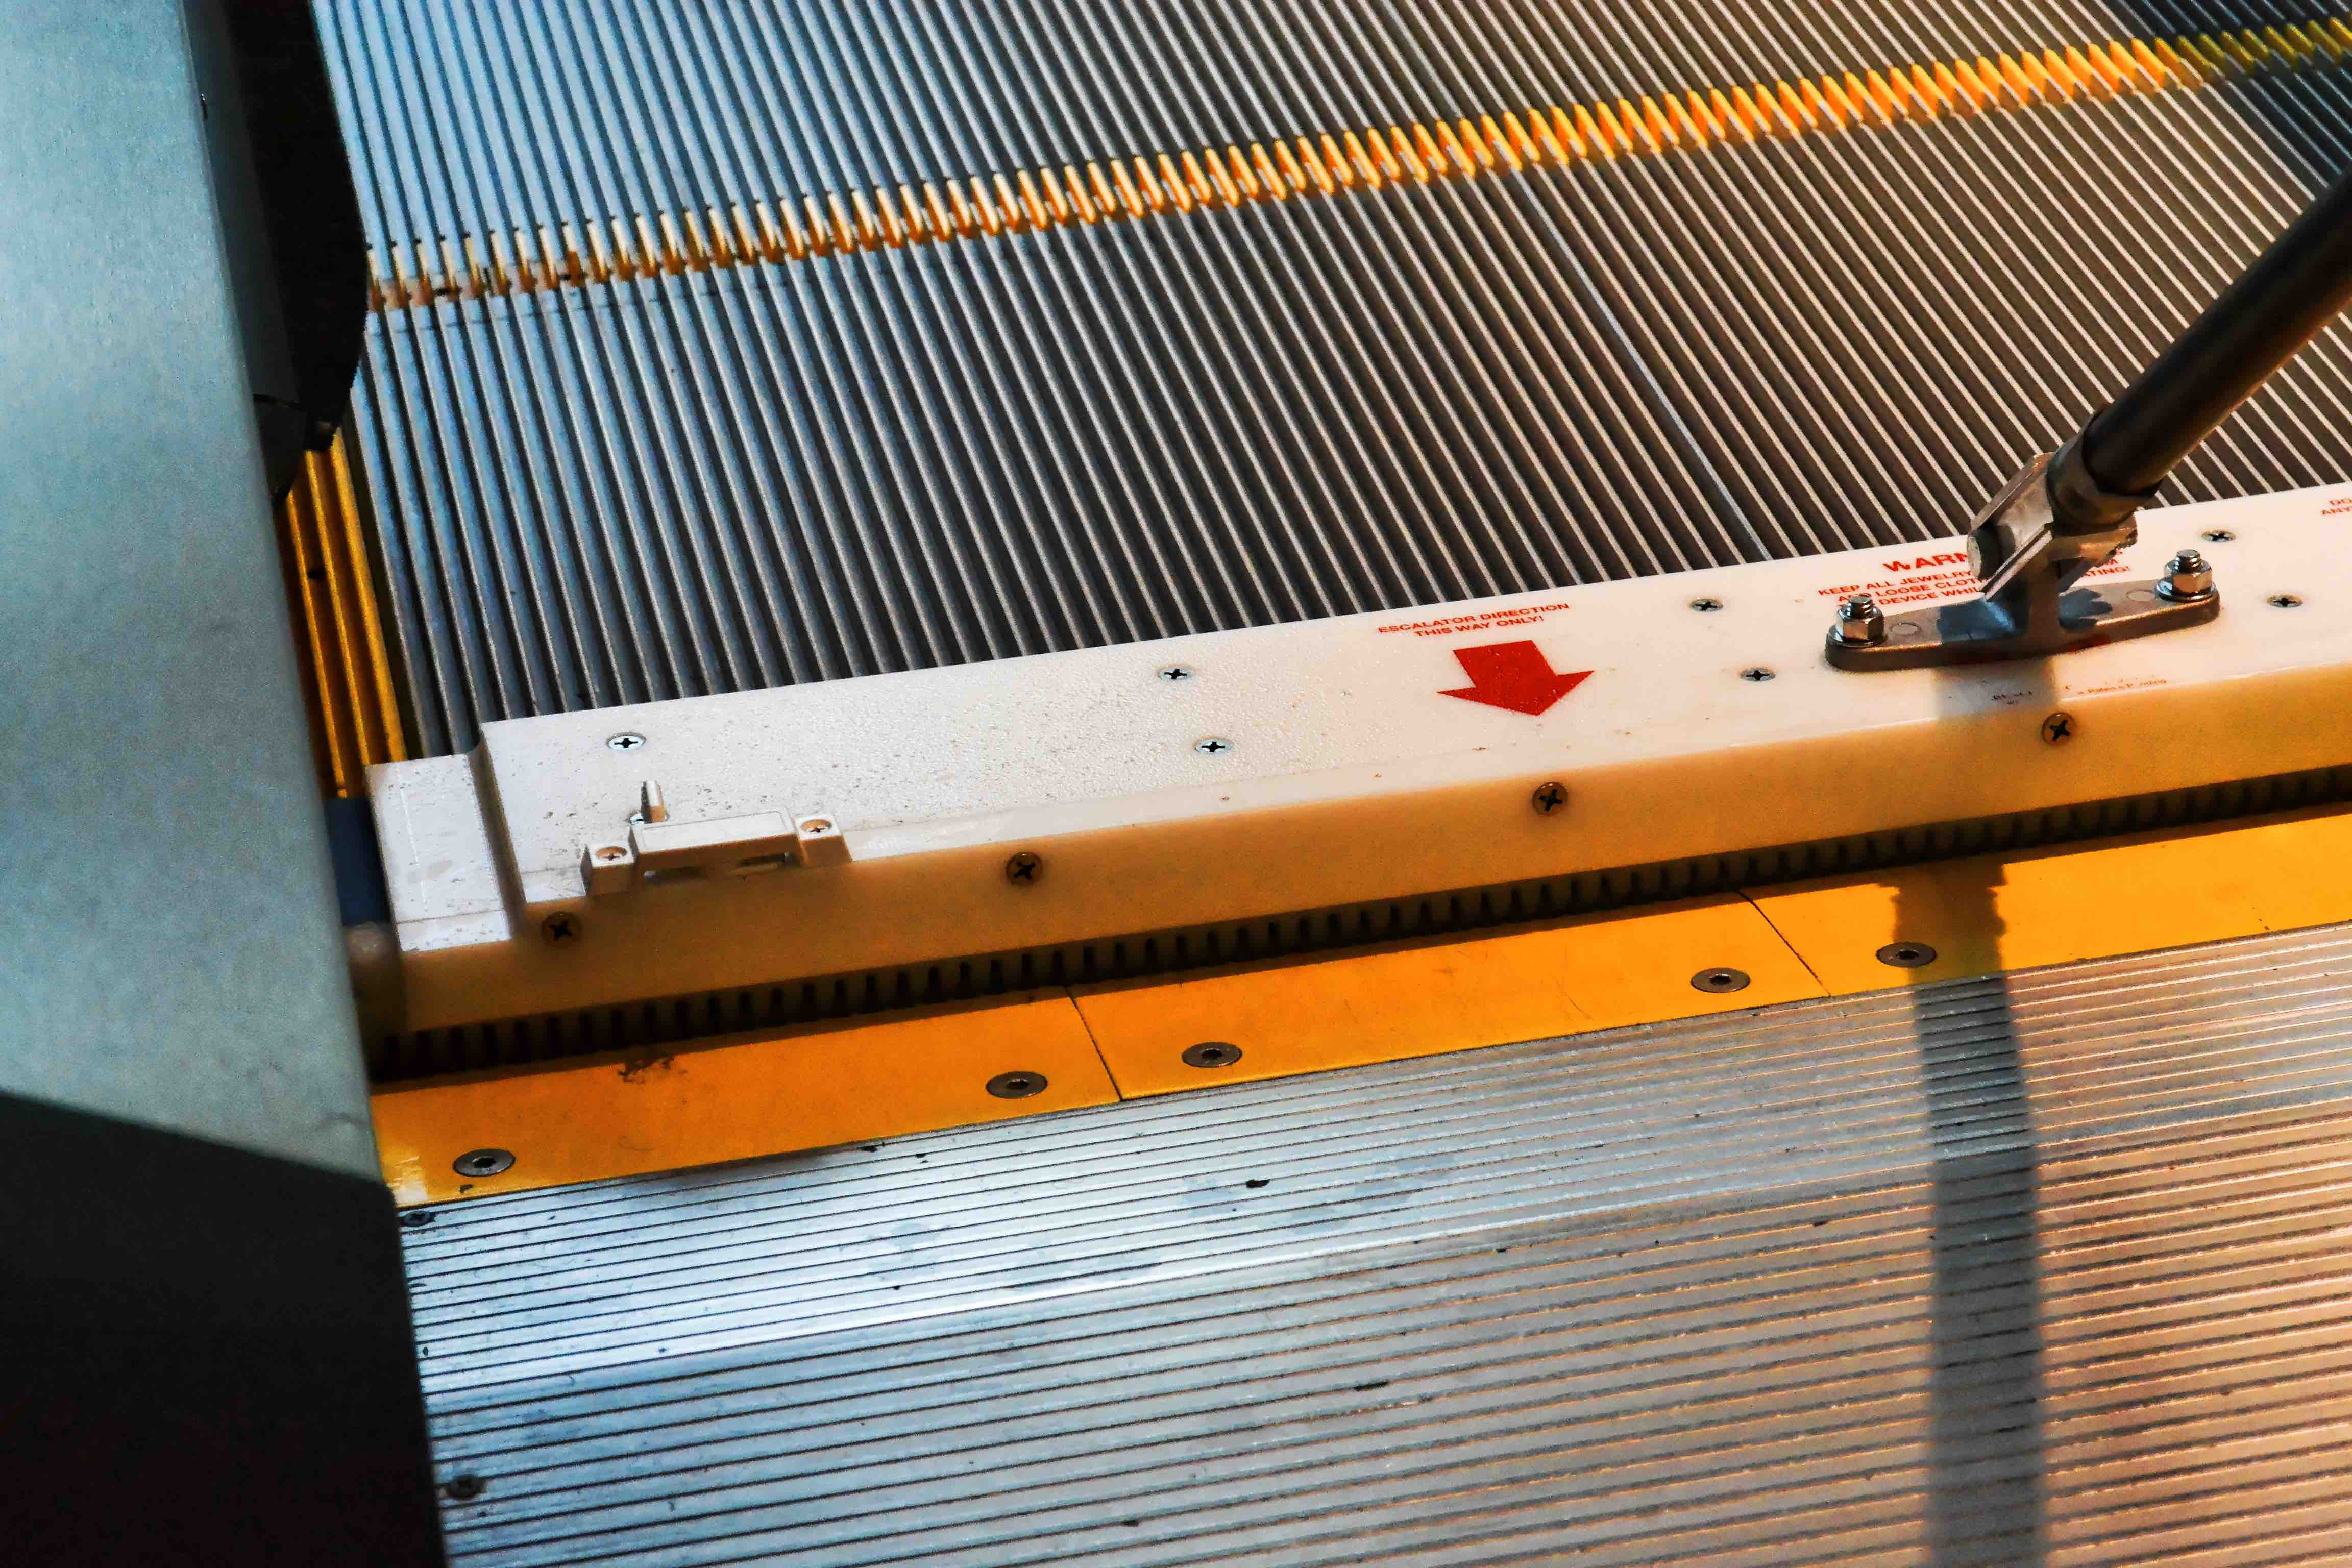 Stainless Steel Escalators : The solution unique in stainless steel repair and